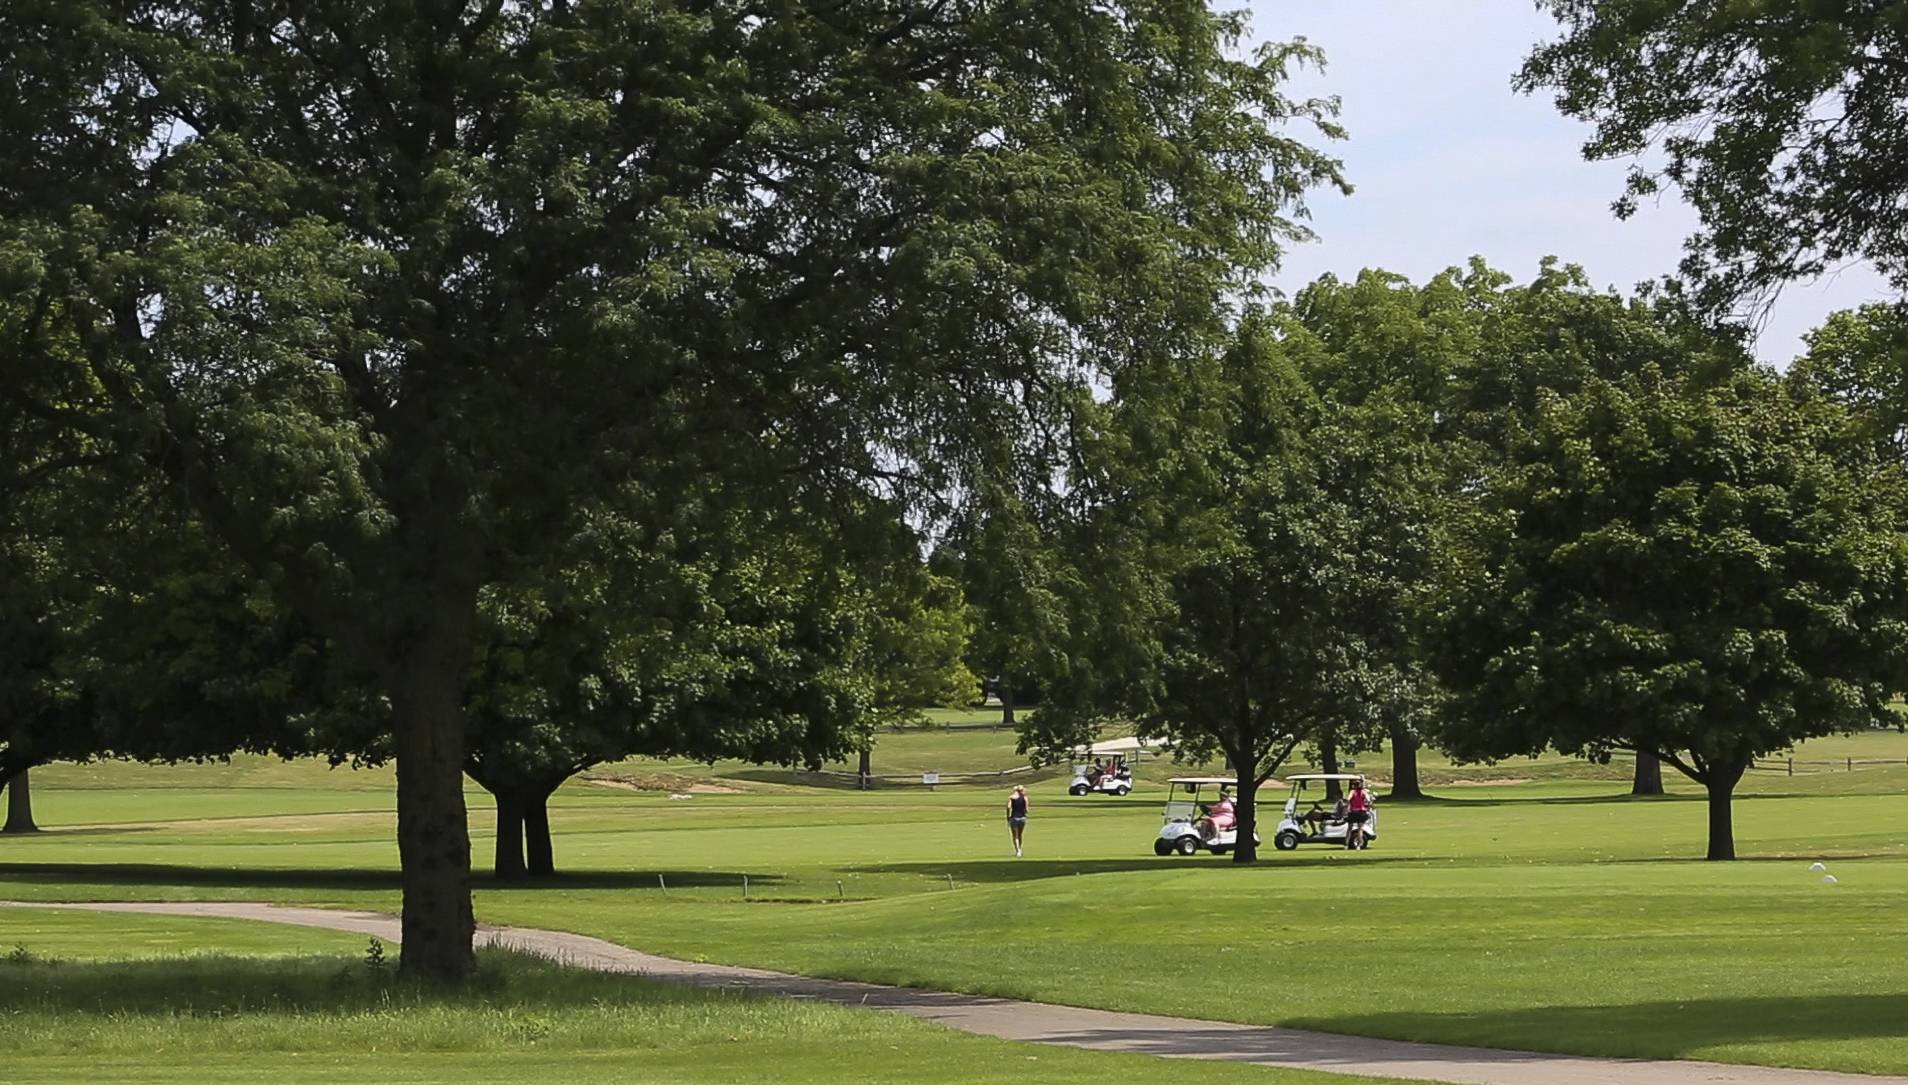 The 27-hole golf course at Indian Lakes Resort in Bloomingdale, which closed last fall, could become home to more than 500 ranch-style houses aimed at residents 55 and older under a new development plan.